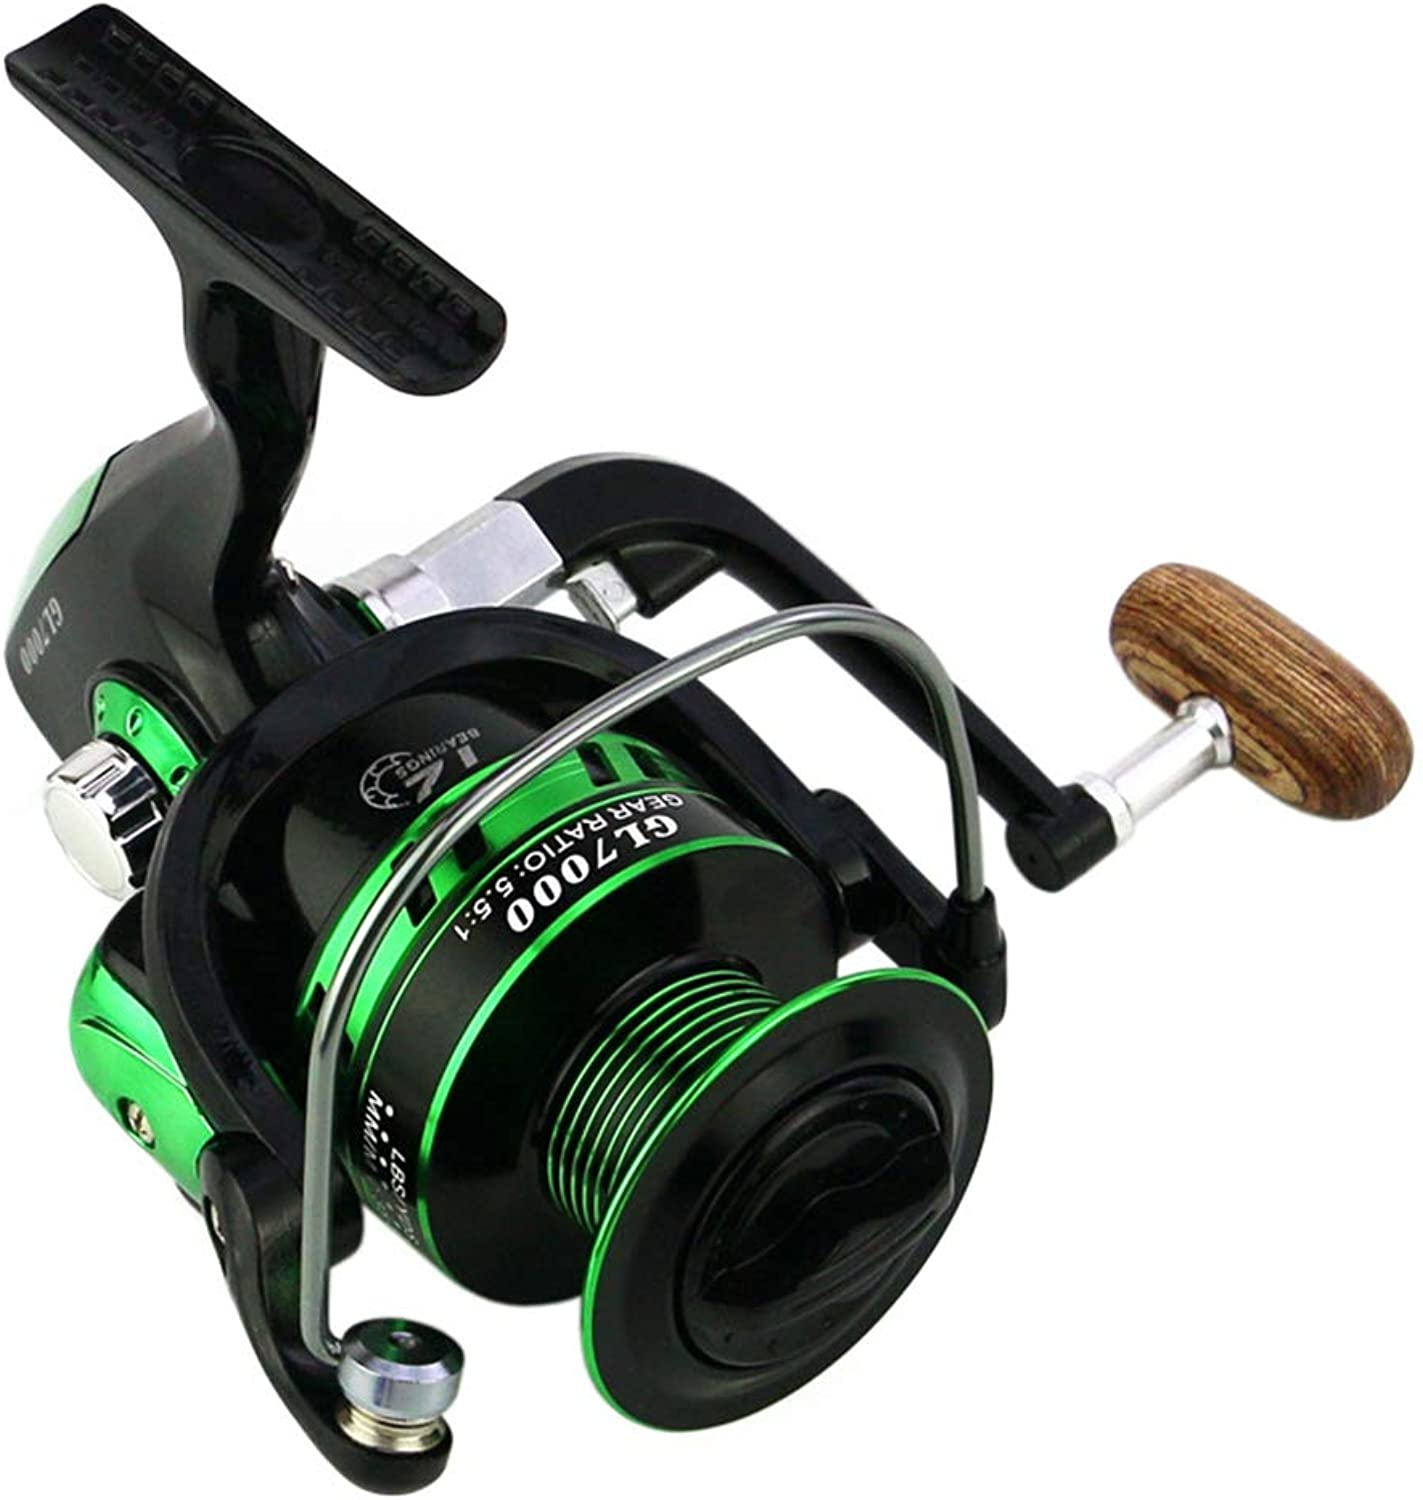 Fishing Reels Spinning Reels Freshwater Saltwater Fishing Reel 12 + 1BB Ball Bearing Spinning Reel Left Right Replaceable Fishing Reel